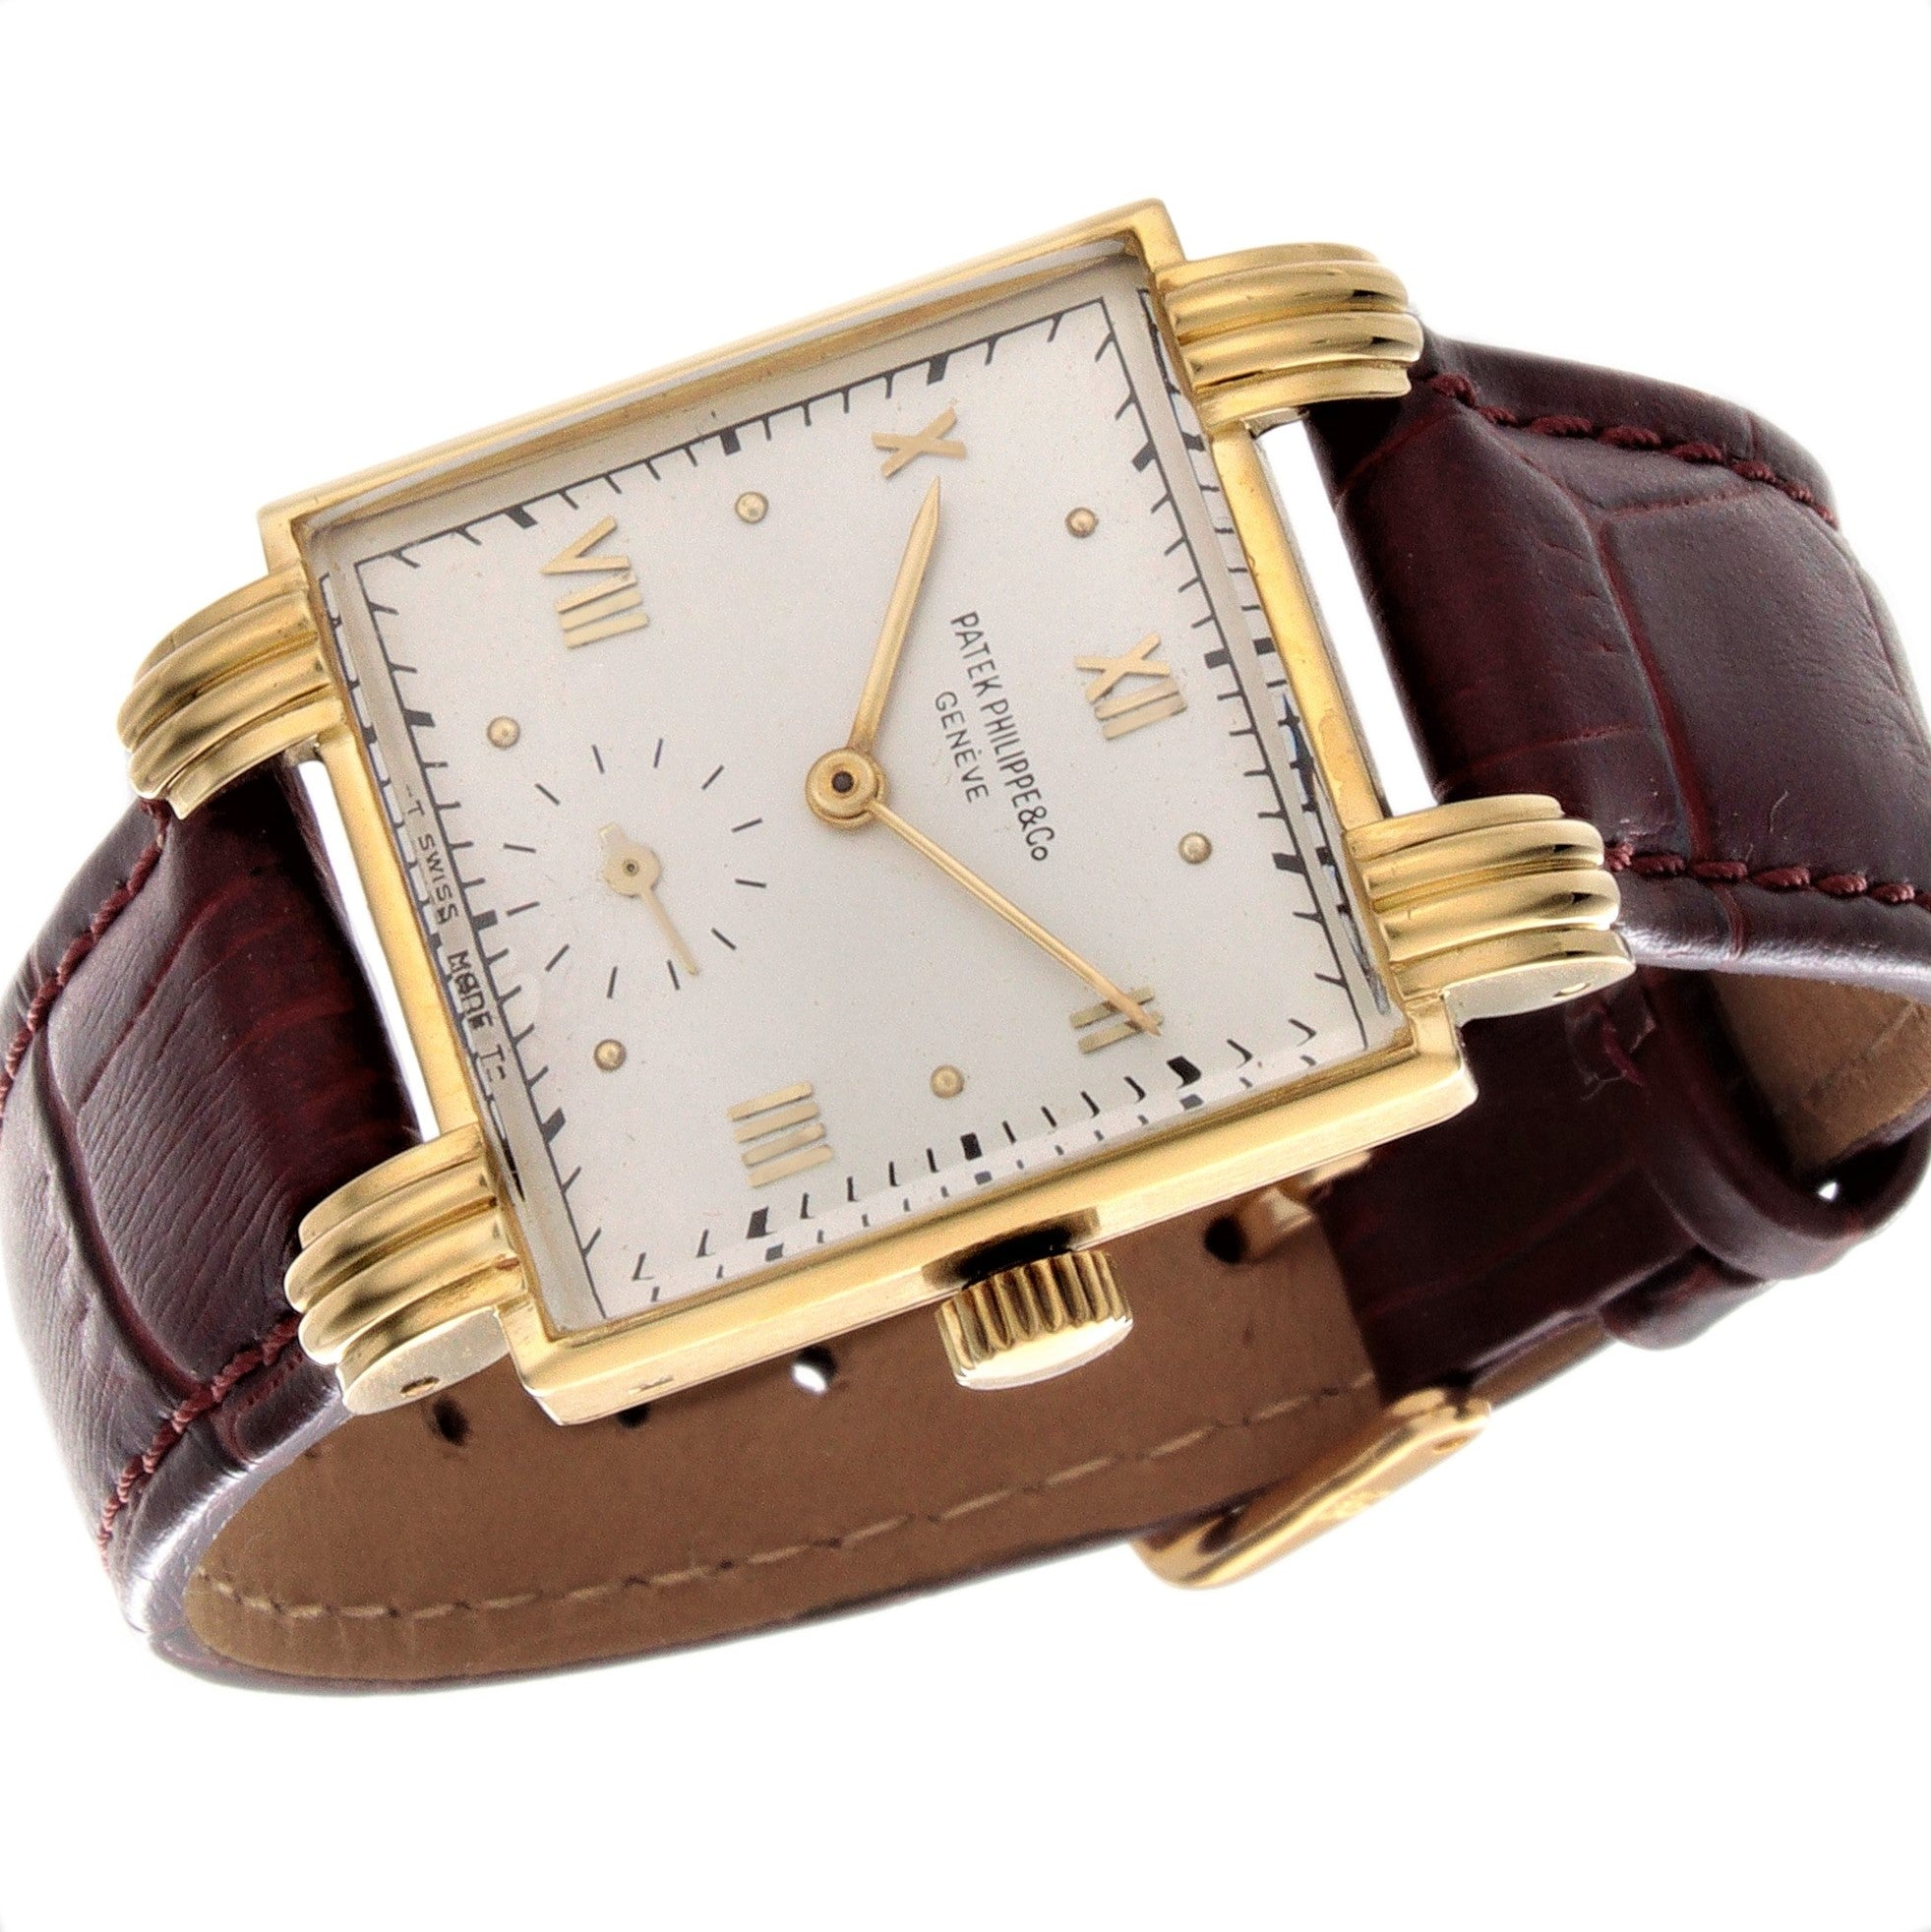 Patek Philippe 1567J Vintage Square Watch